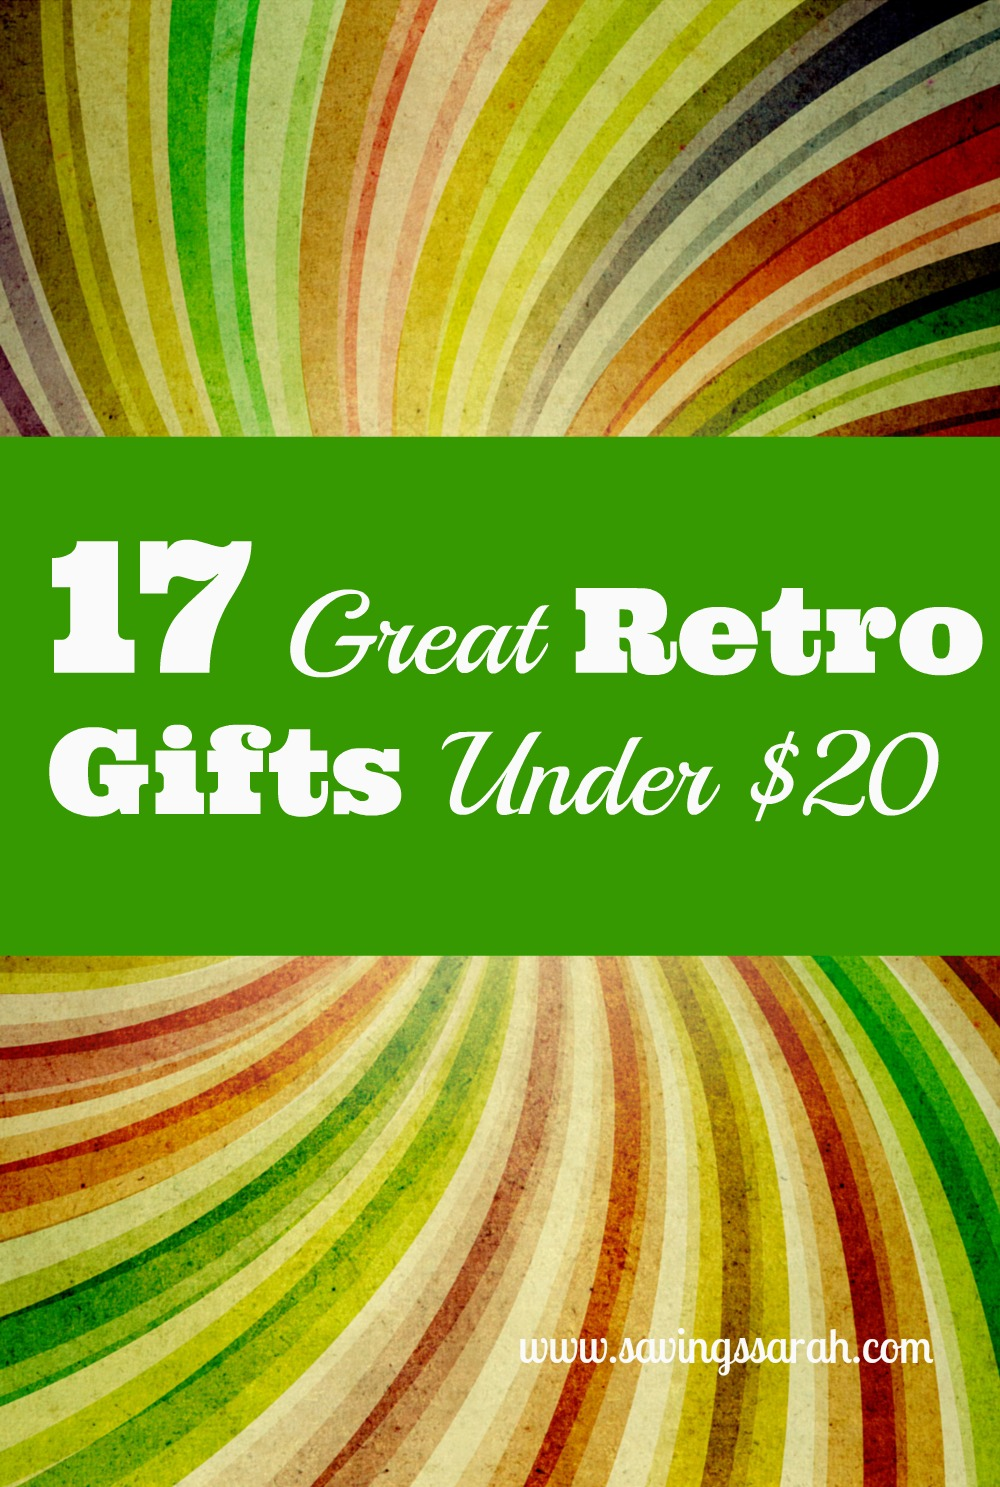 17 Neat Retro Gifts Under $20 - Earning and Saving with Sarah